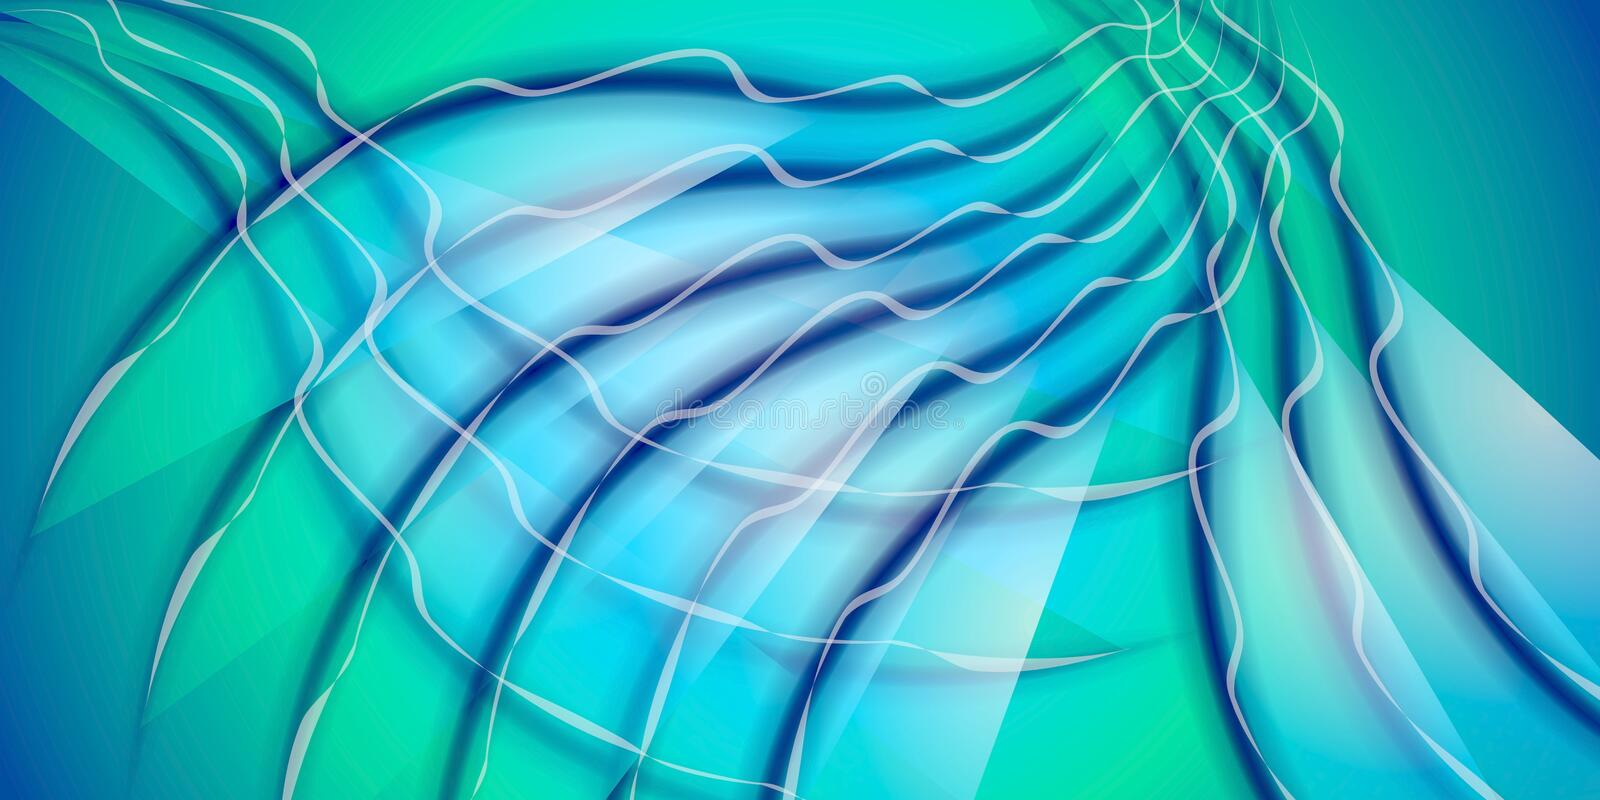 Cool Wispy Lines Pattern Blue royalty free stock photos